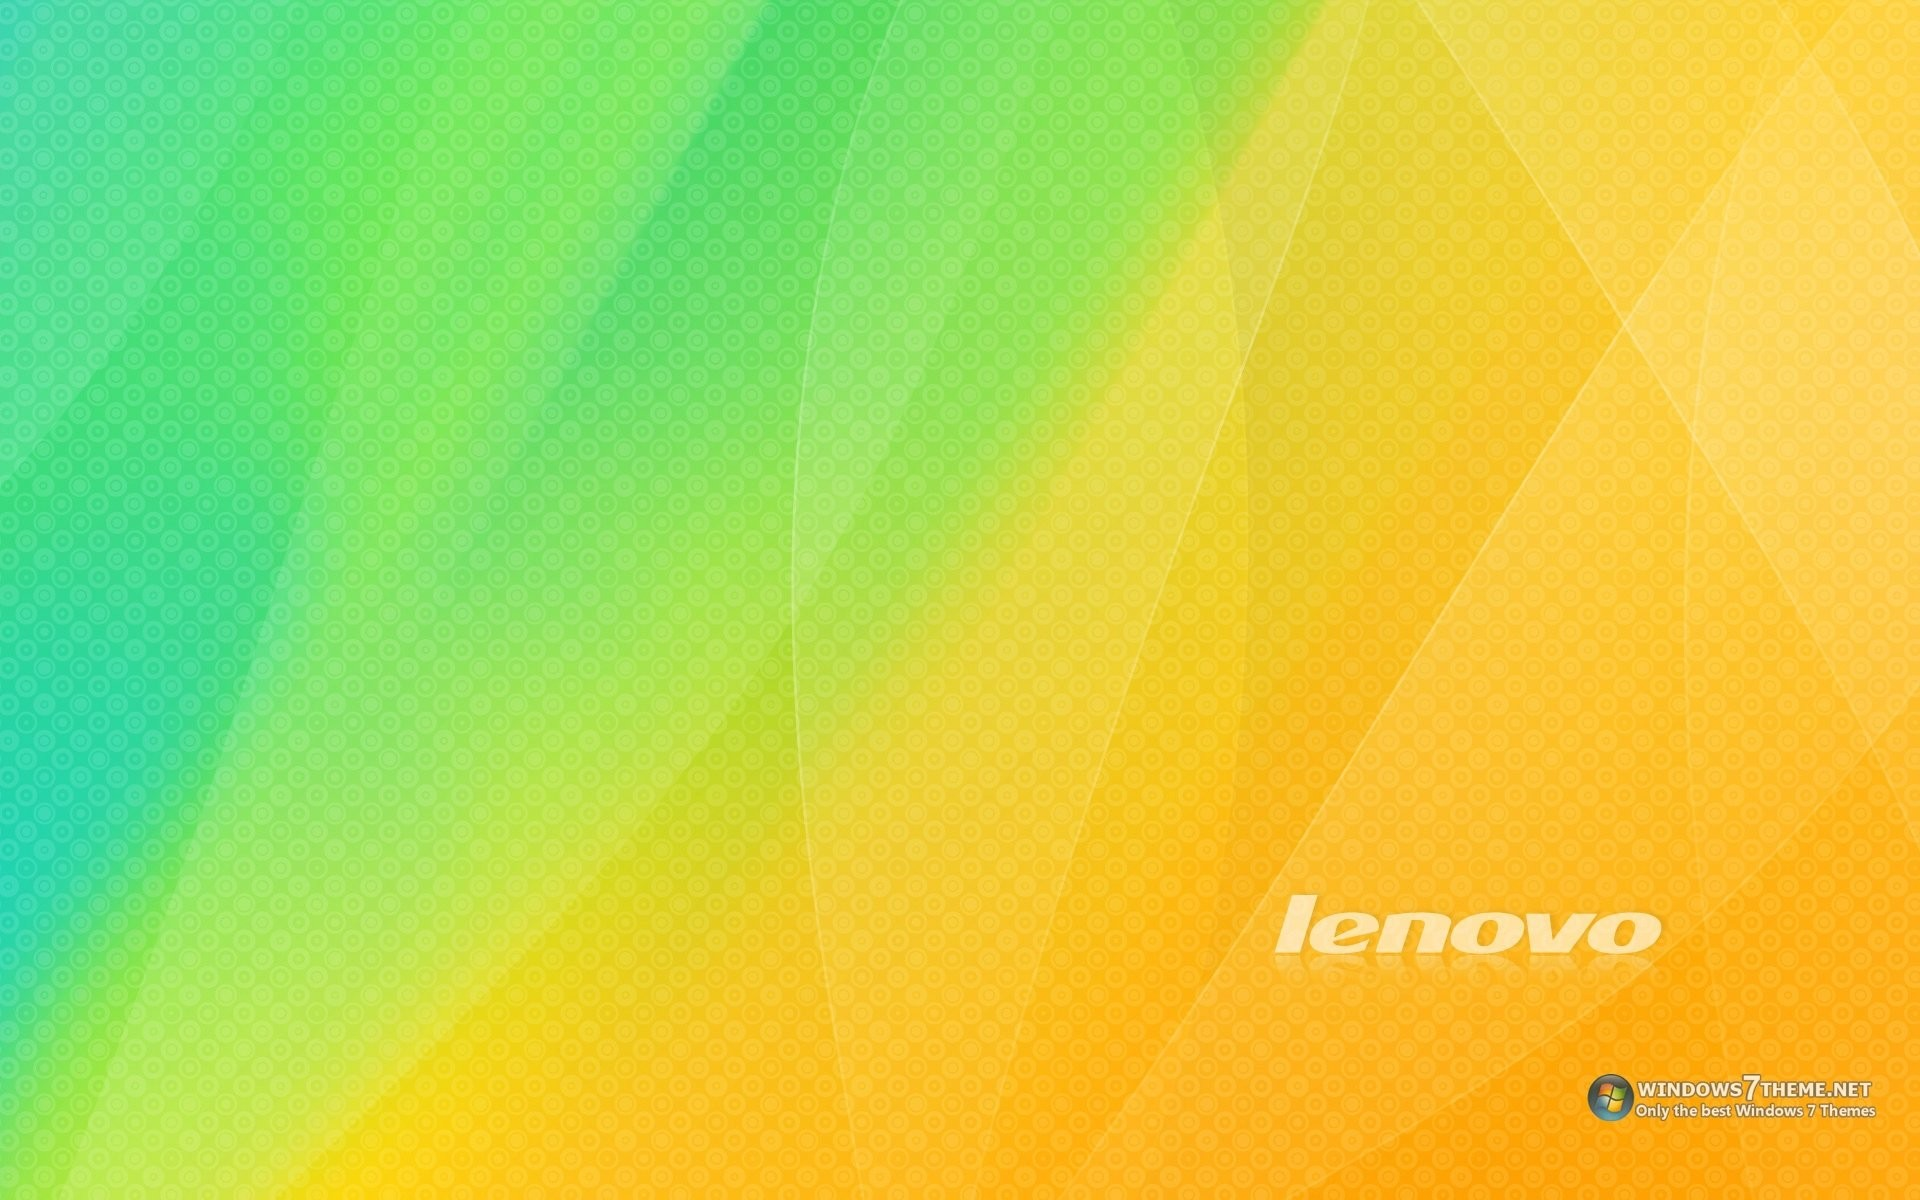 Lenovo Wallpaper Theme: Lenovo Windows 10 Wallpaper (69+ Images